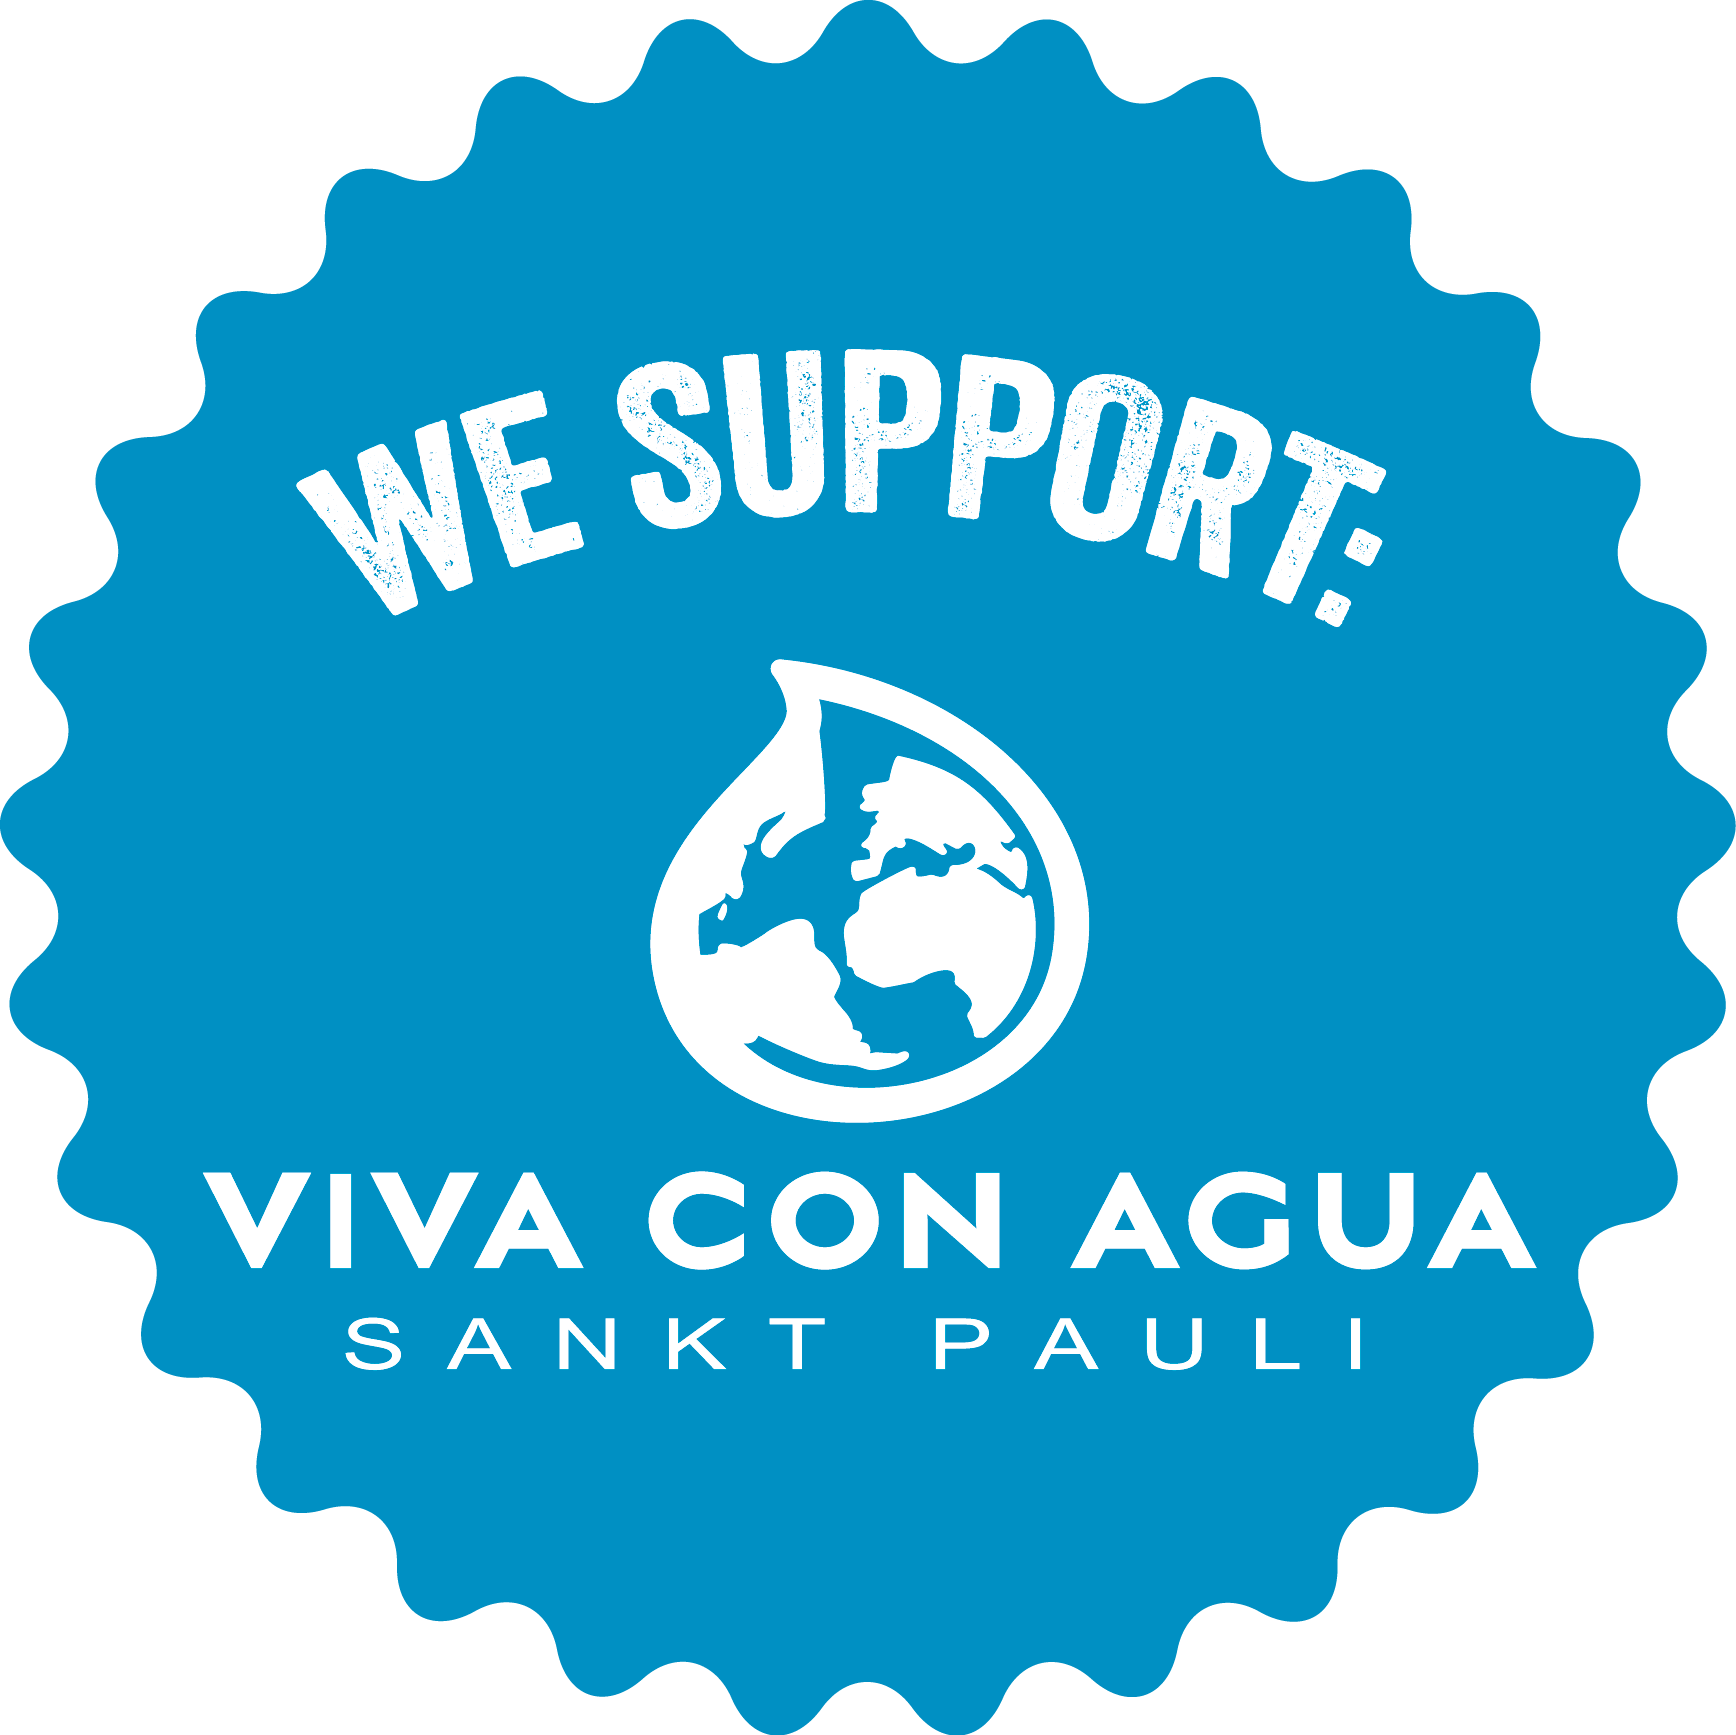 Spende an Viva con Aqua von MTS & APIC Filter